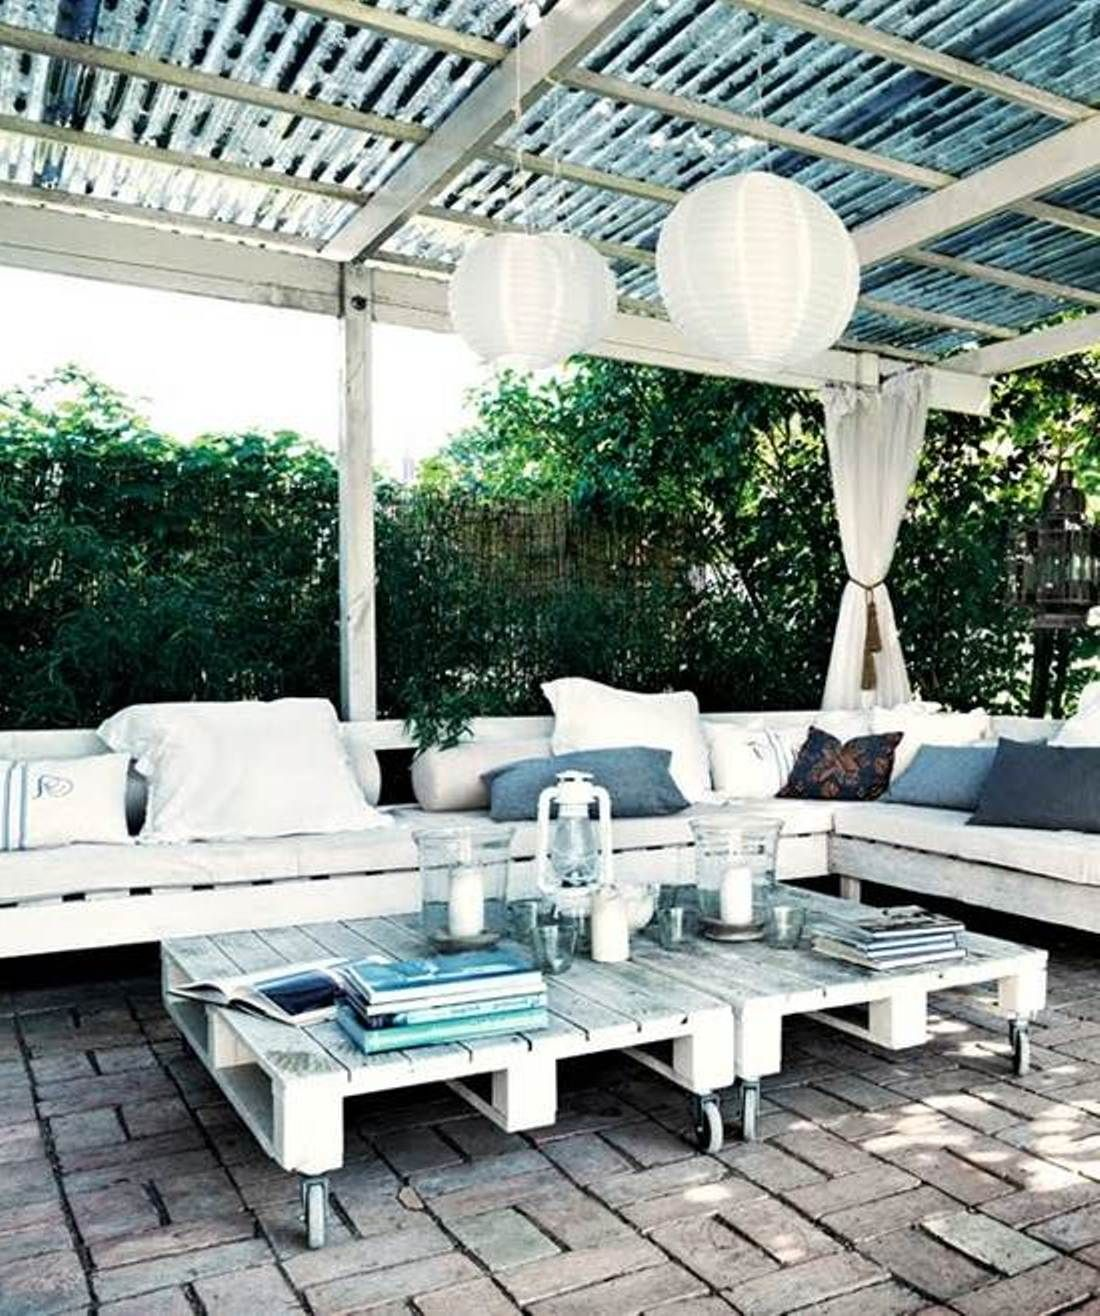 patio ideas on a budget | Plans for Patio Designs On a ... on Back Patio Ideas On A Budget id=86423